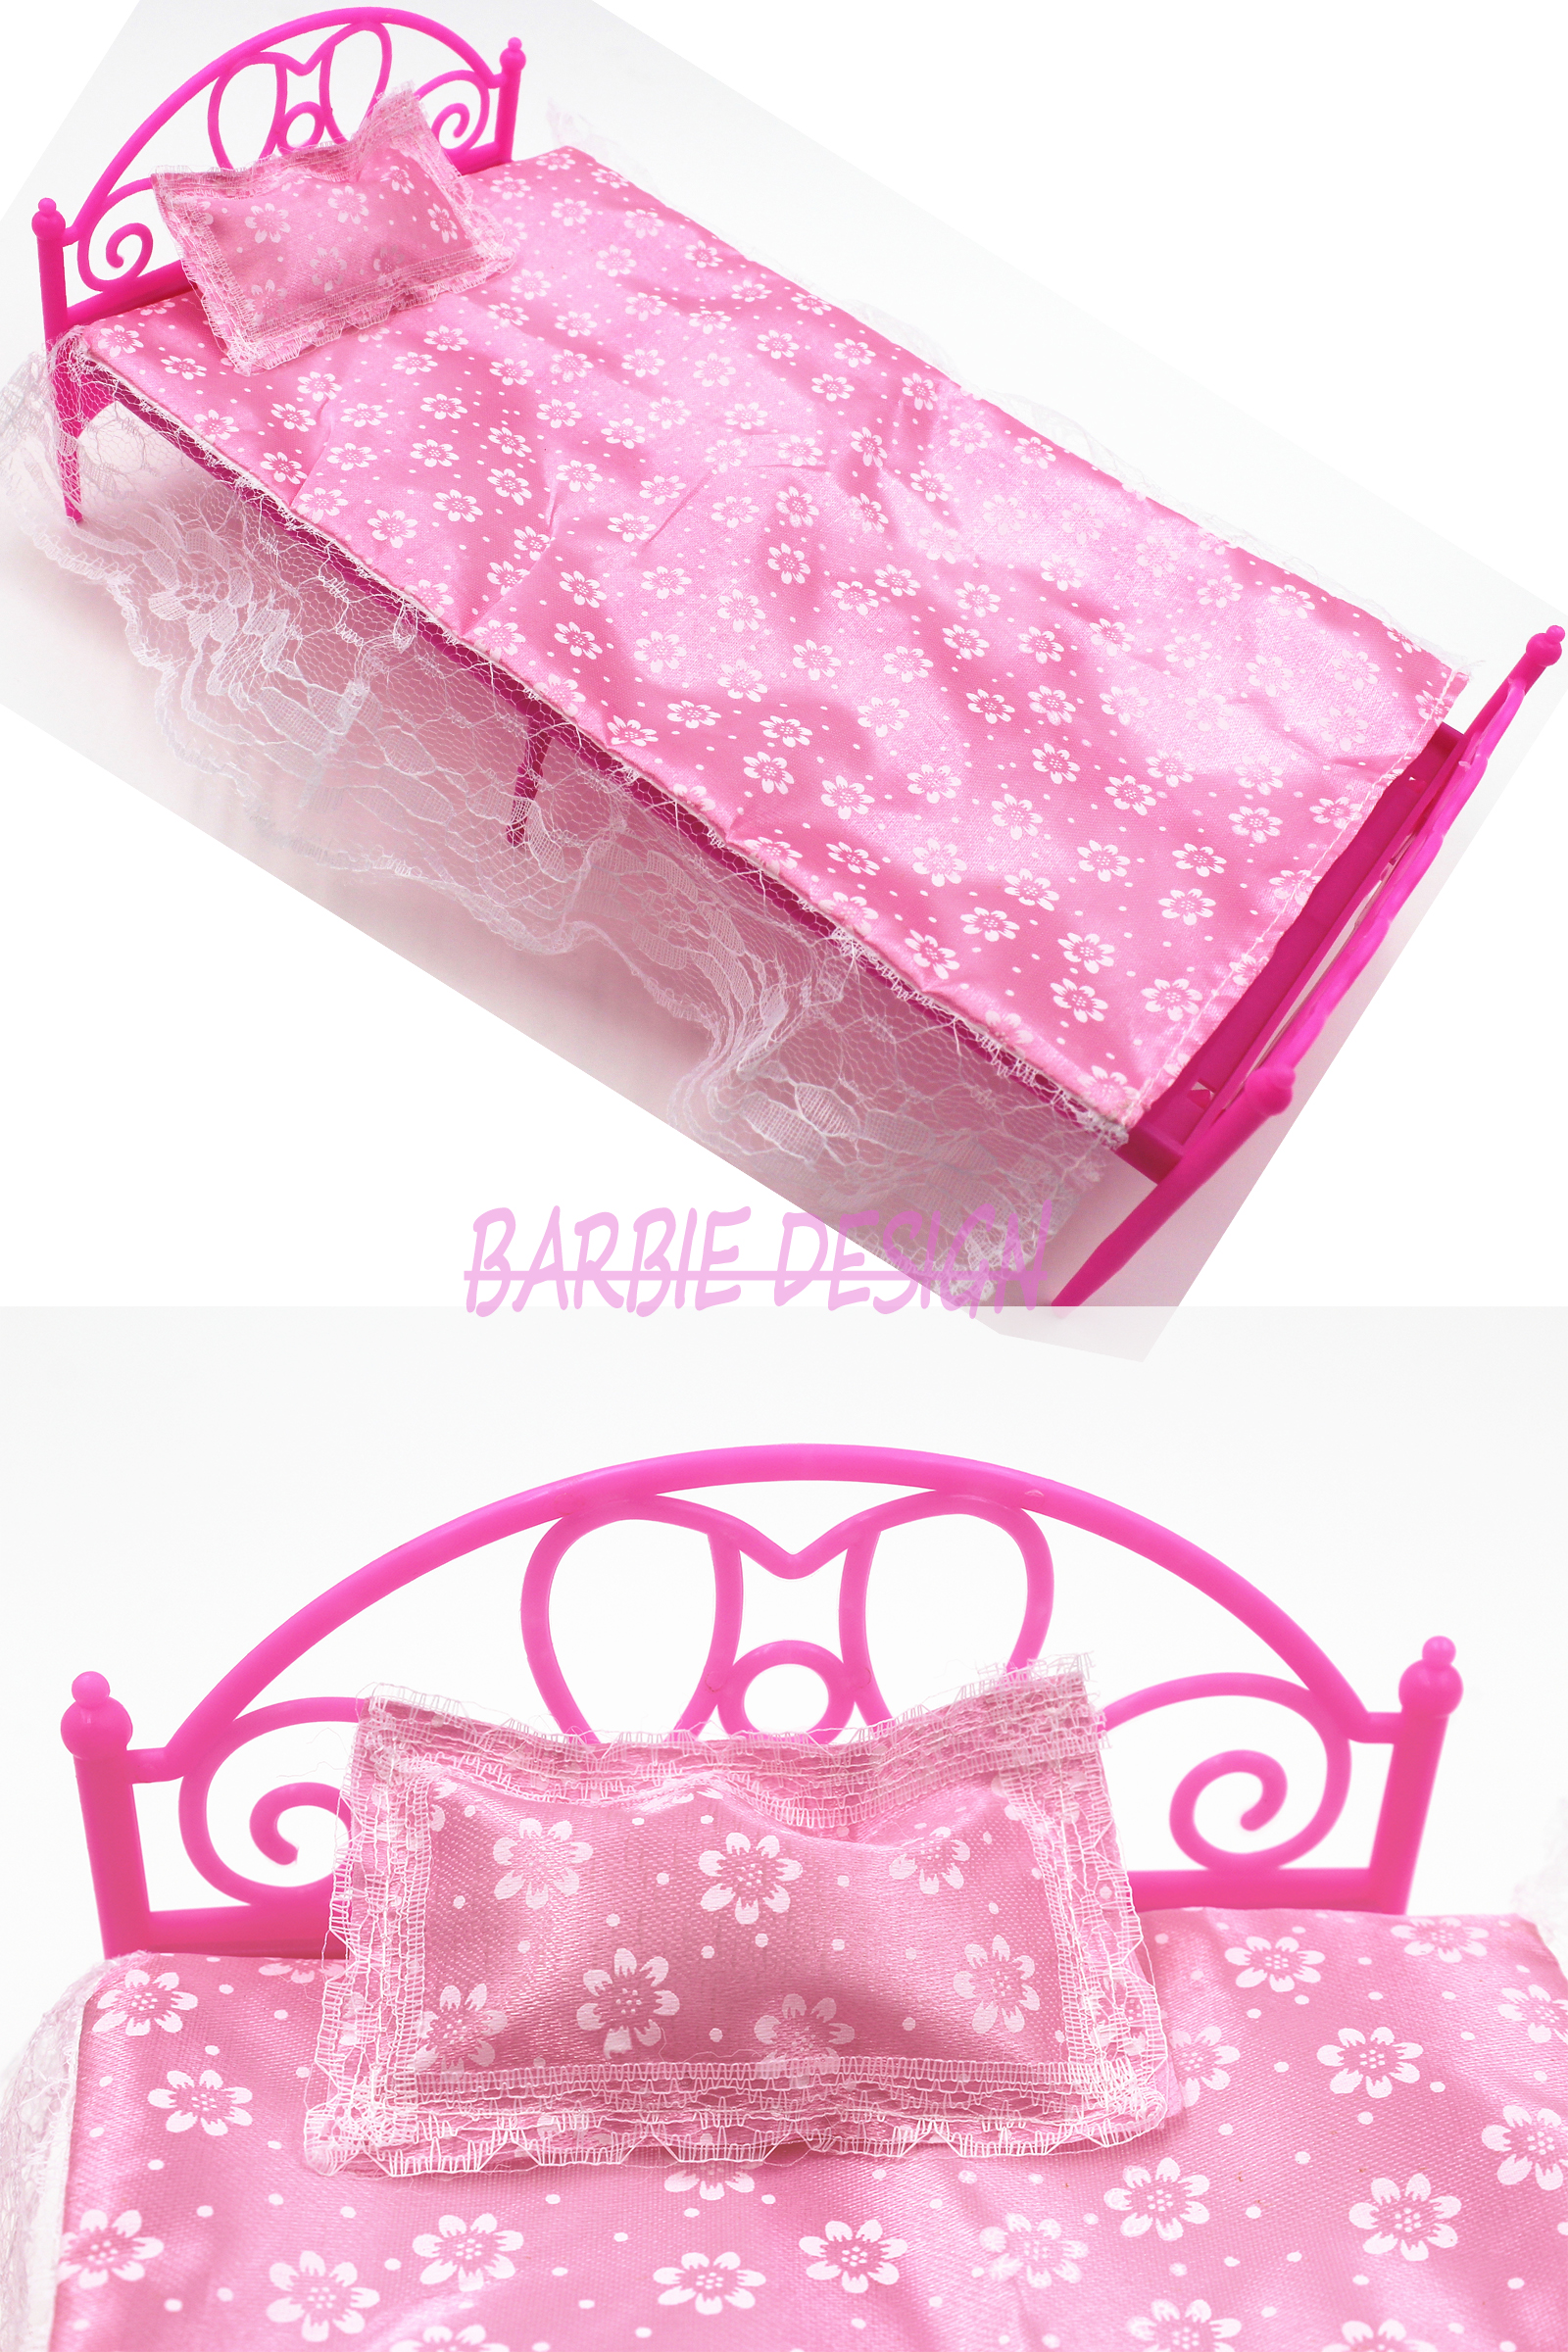 Free Shipping ONE Set Doll Accessories Pink Mini Doll Bed Furniture For Barbie Doll House Baby Toys Hot Selling karmart cathy doll 2 in 1 vitamin c tint tinted gluta gloss pink lip korea free shipping